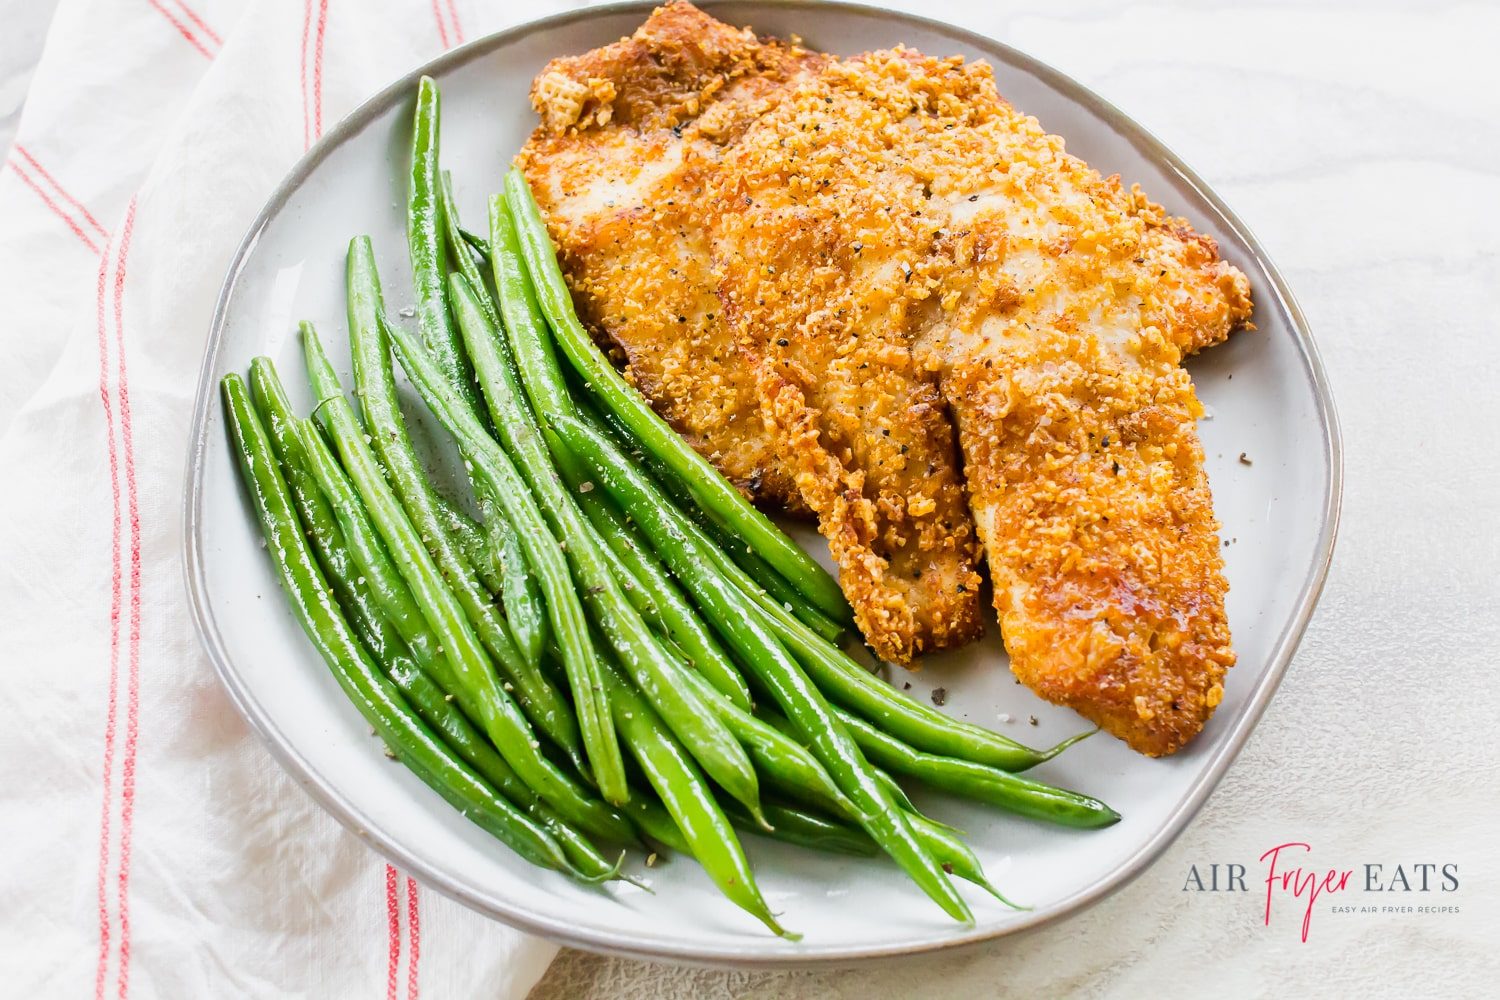 Overhead shot of air fryer tilapia on a gray plate with sautéed green beans